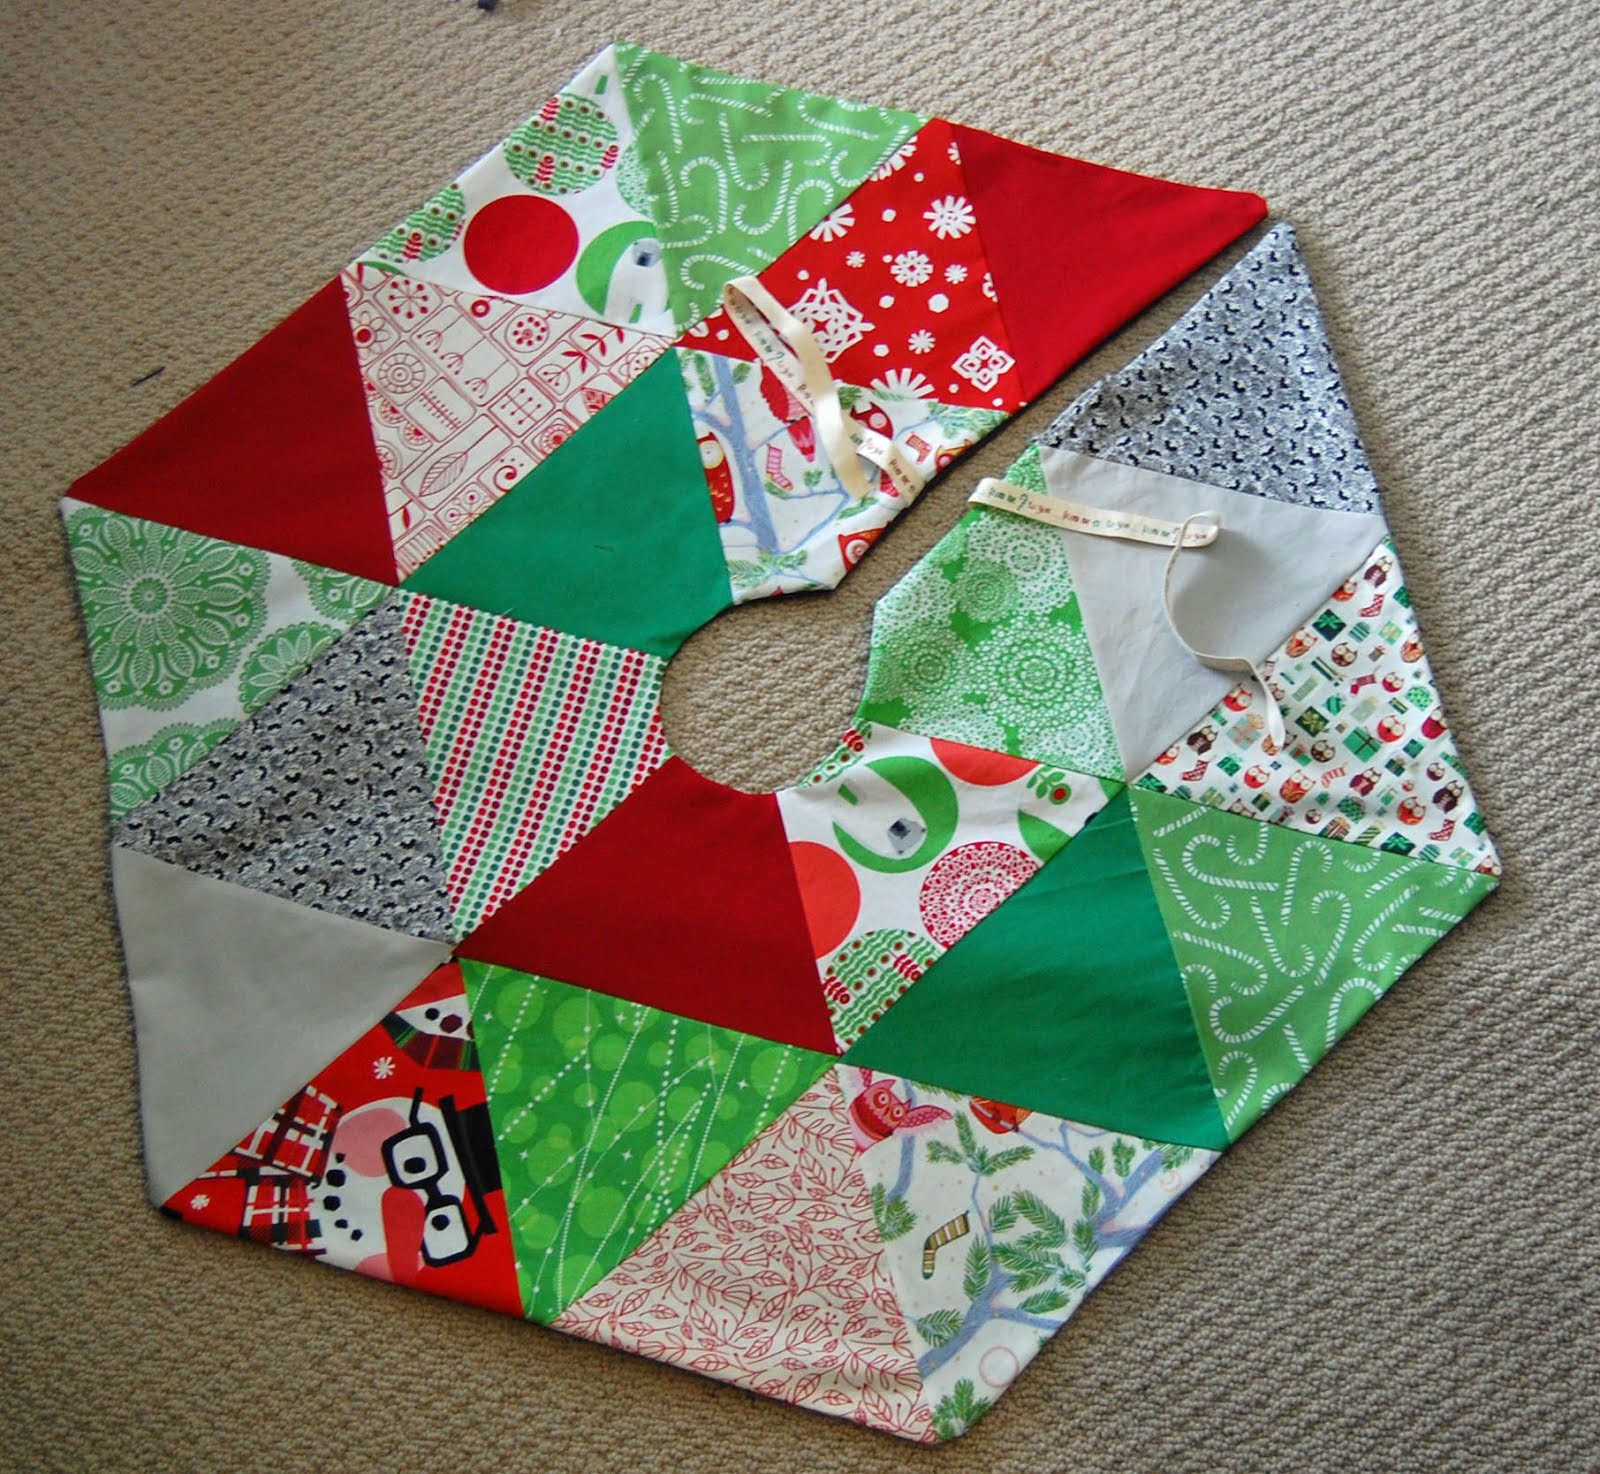 Quilted Christmas Tree Skirt Patterns: Quilt Inspiration: Free Pattern Day! Christmas Tree Skirts